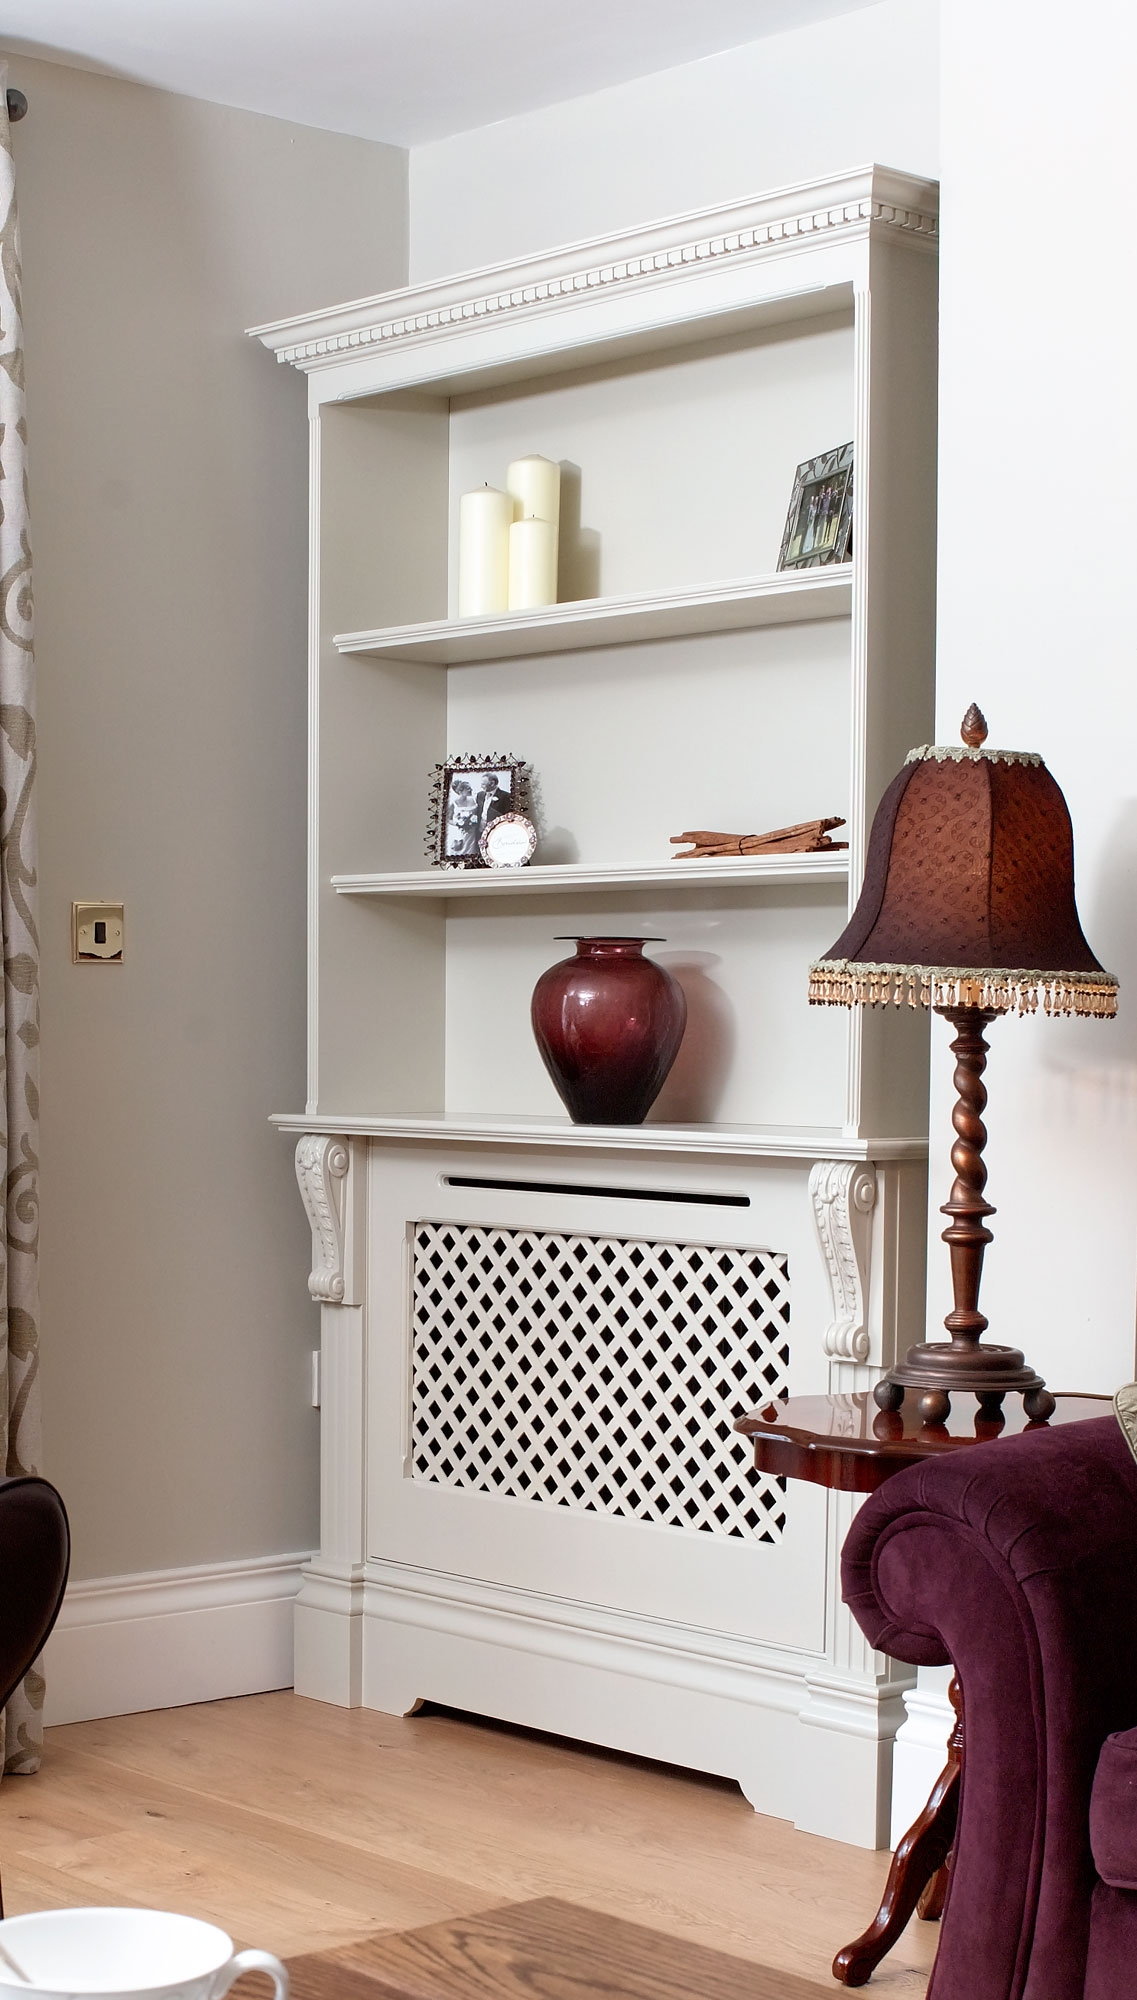 Popular Photo of Radiator Bookcase Cabinets